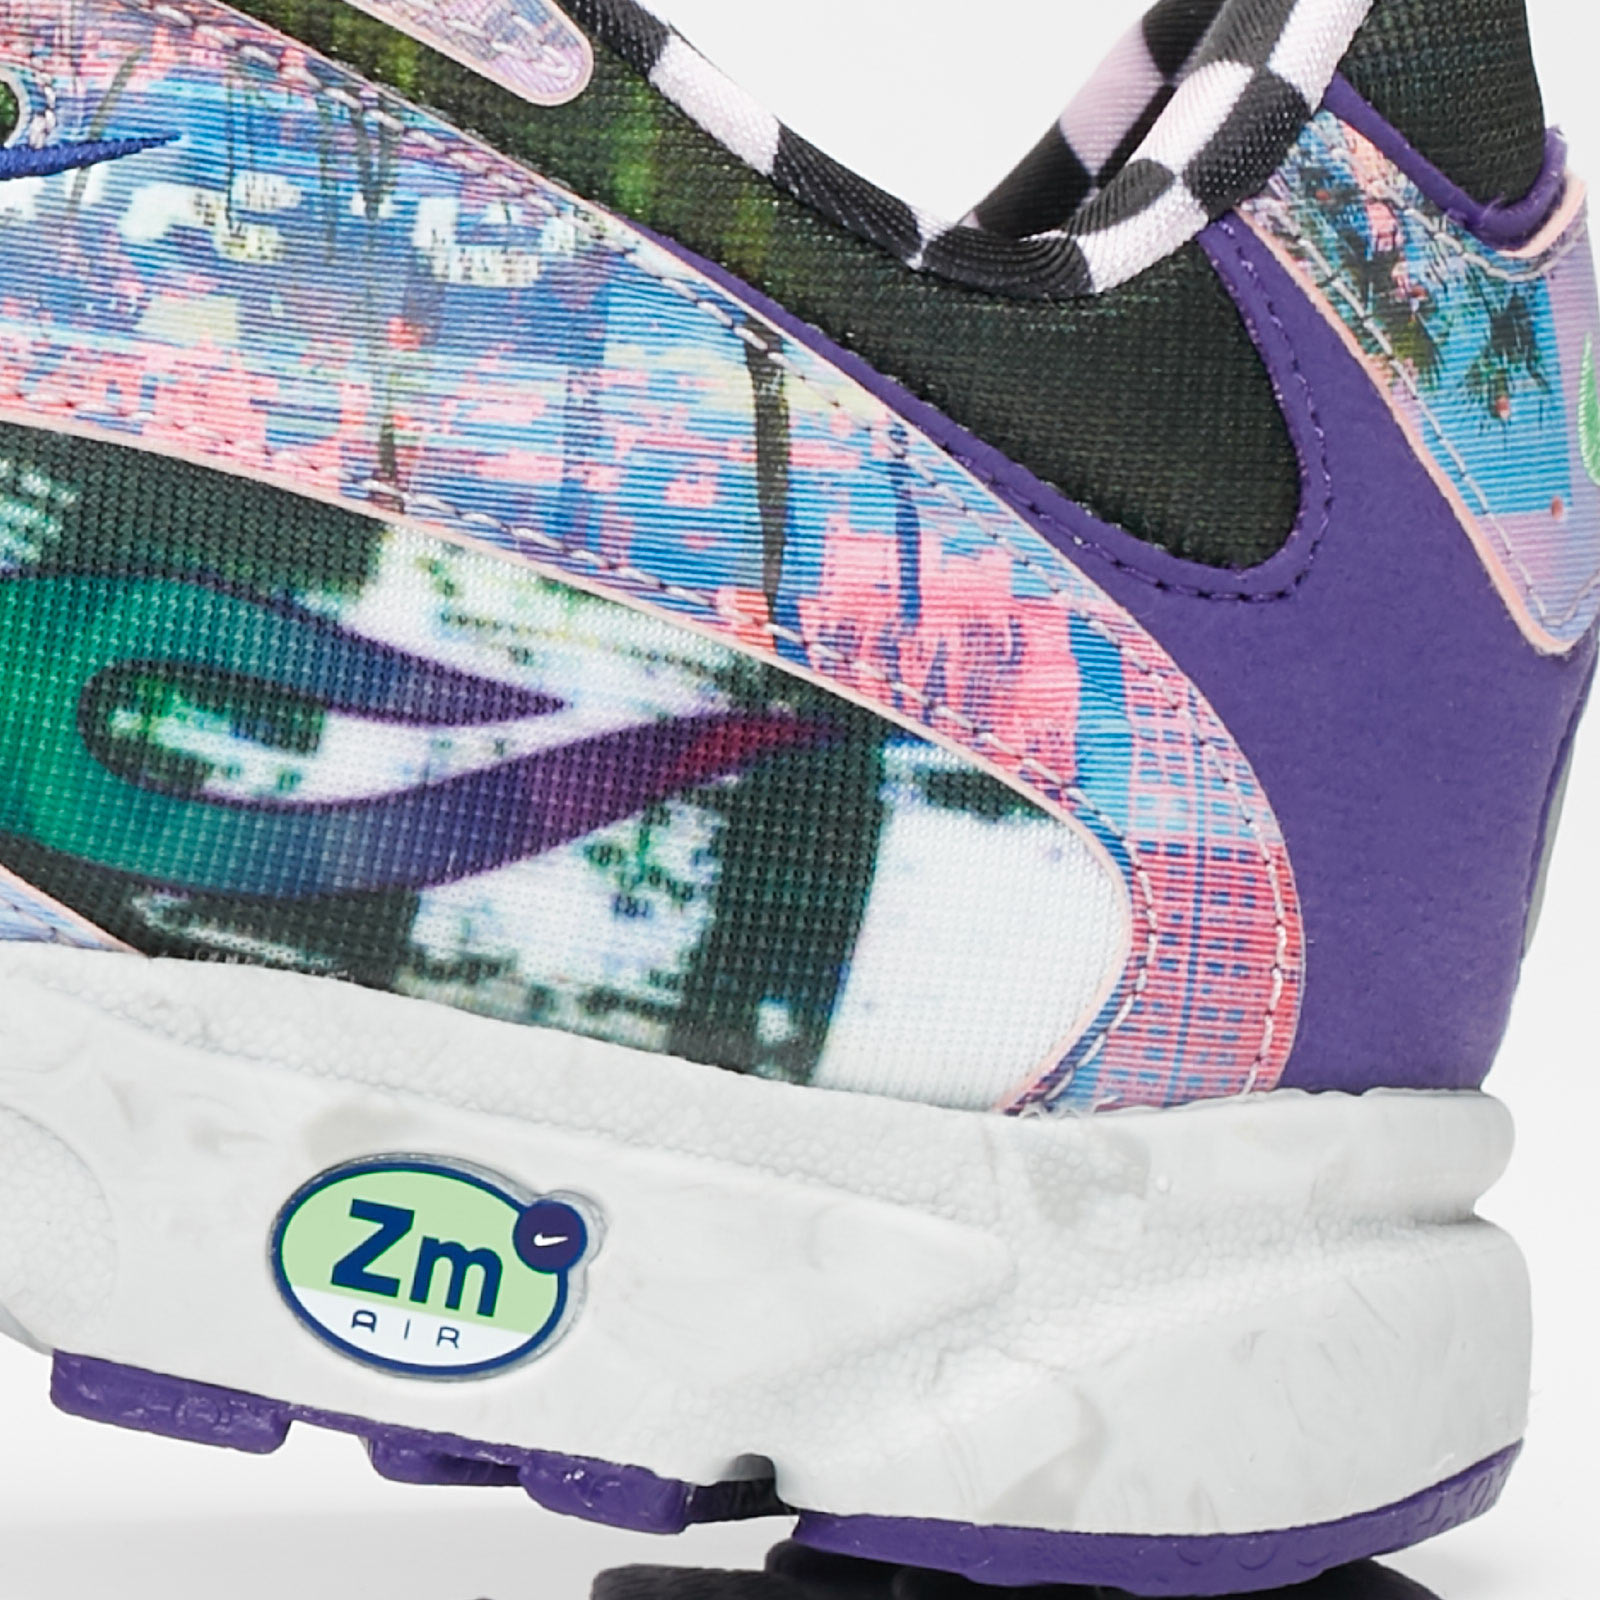 15325f77a5d33 Nike Sportswear Zoom Streak Spectrum Plus Vaporwave - 7. Close